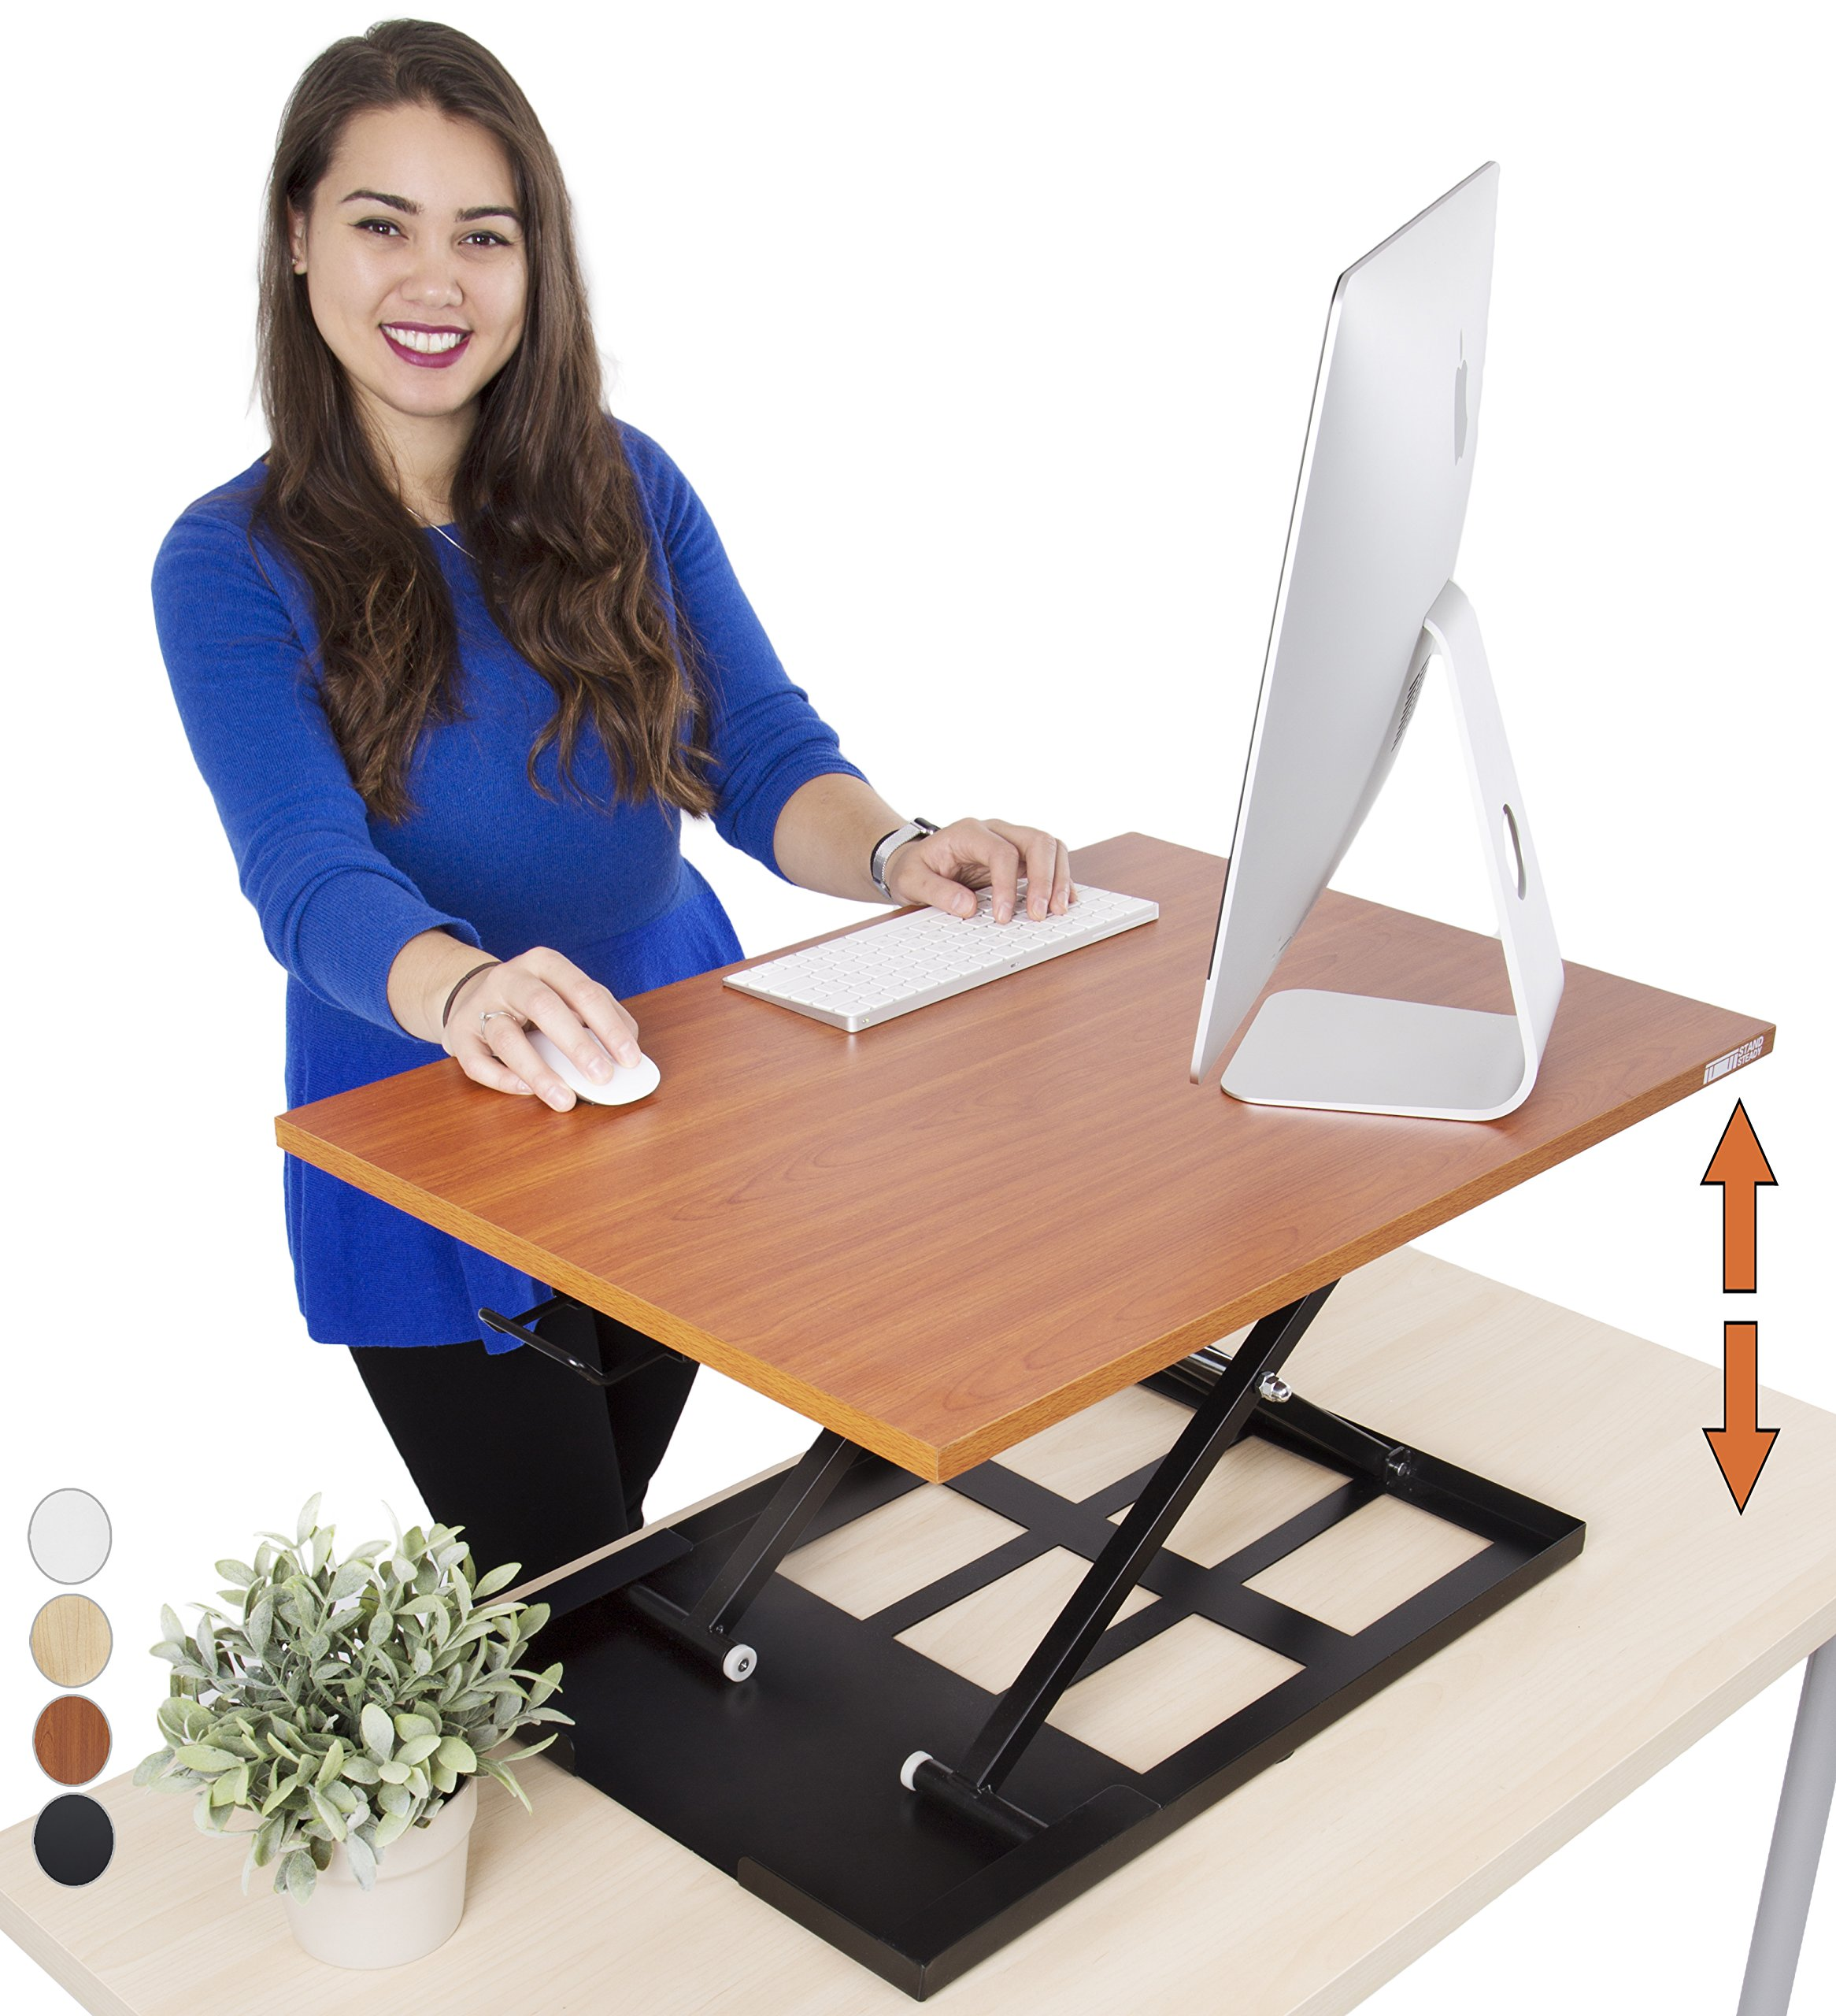 Standing Desk X-Elite – Stand Steady Standing Desk | X-Elite Pro Version, Instantly Convert Any Desk into a Sit / Stand up Desk, Height-Adjustable, Fully Assembled Desk Converter (Cherry)